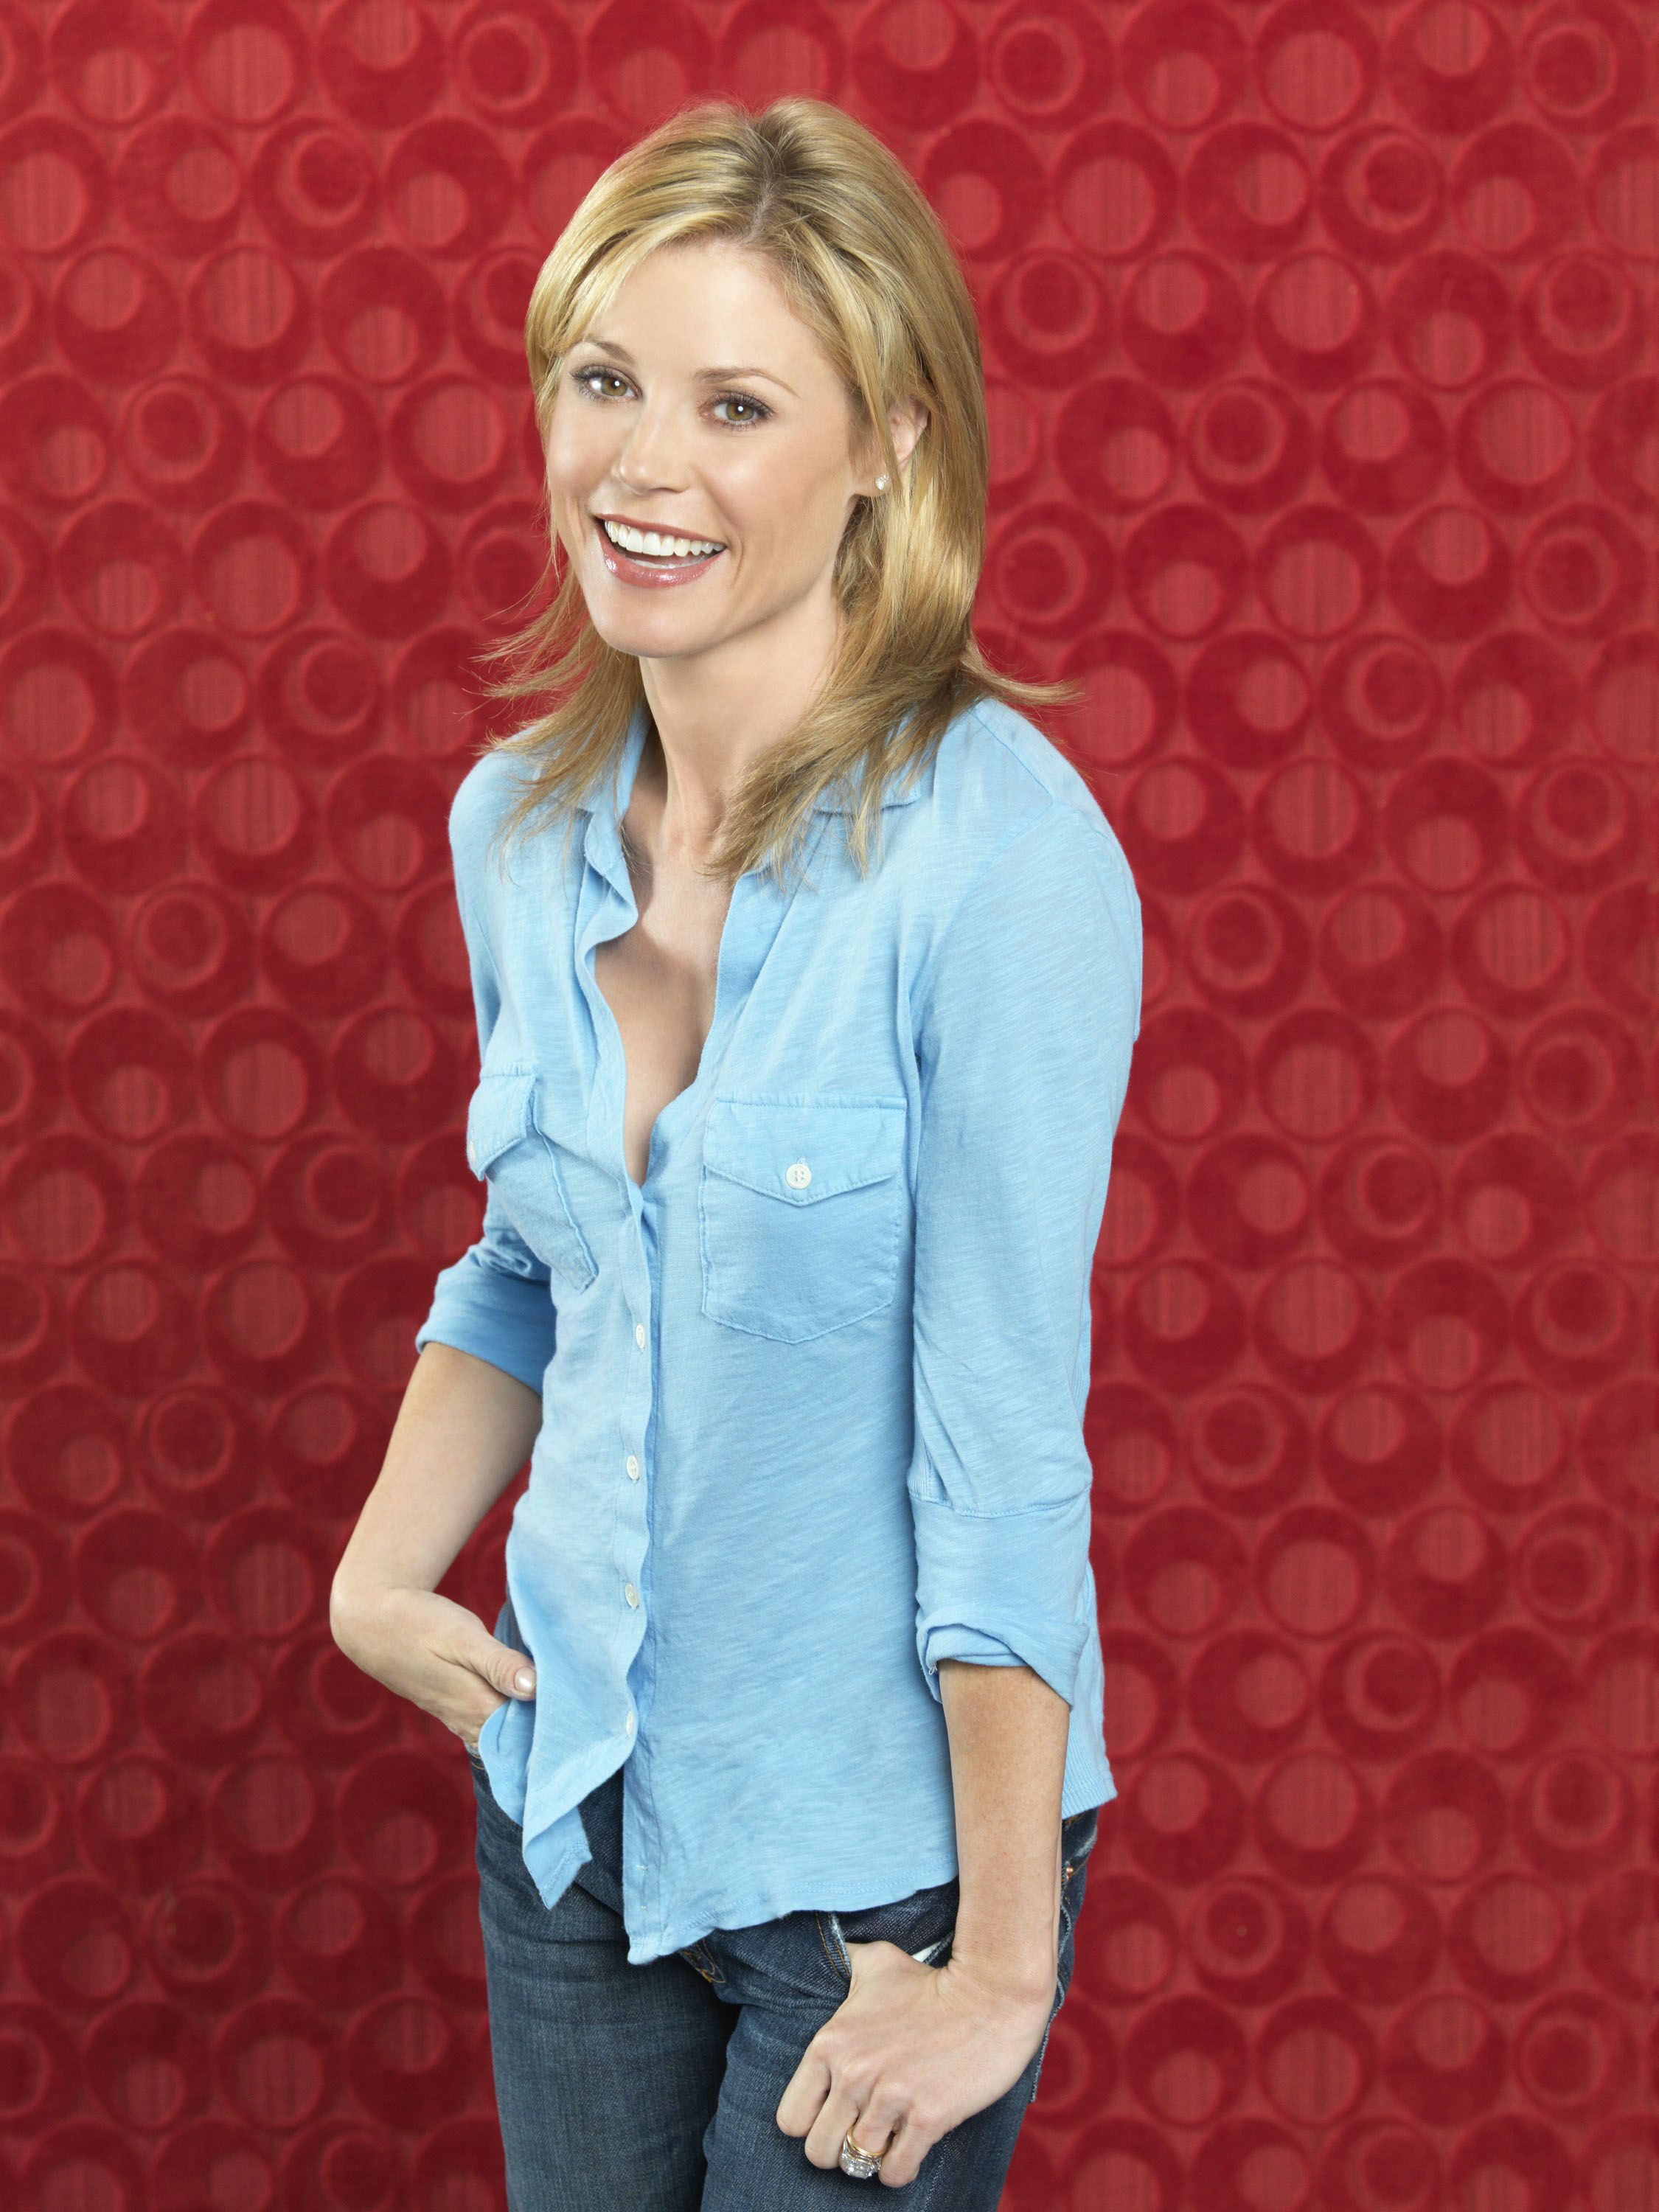 Julie Bowen As Claire Dunphy In Modernfamily Season 2 Julie Bowen Bowen Modern Family